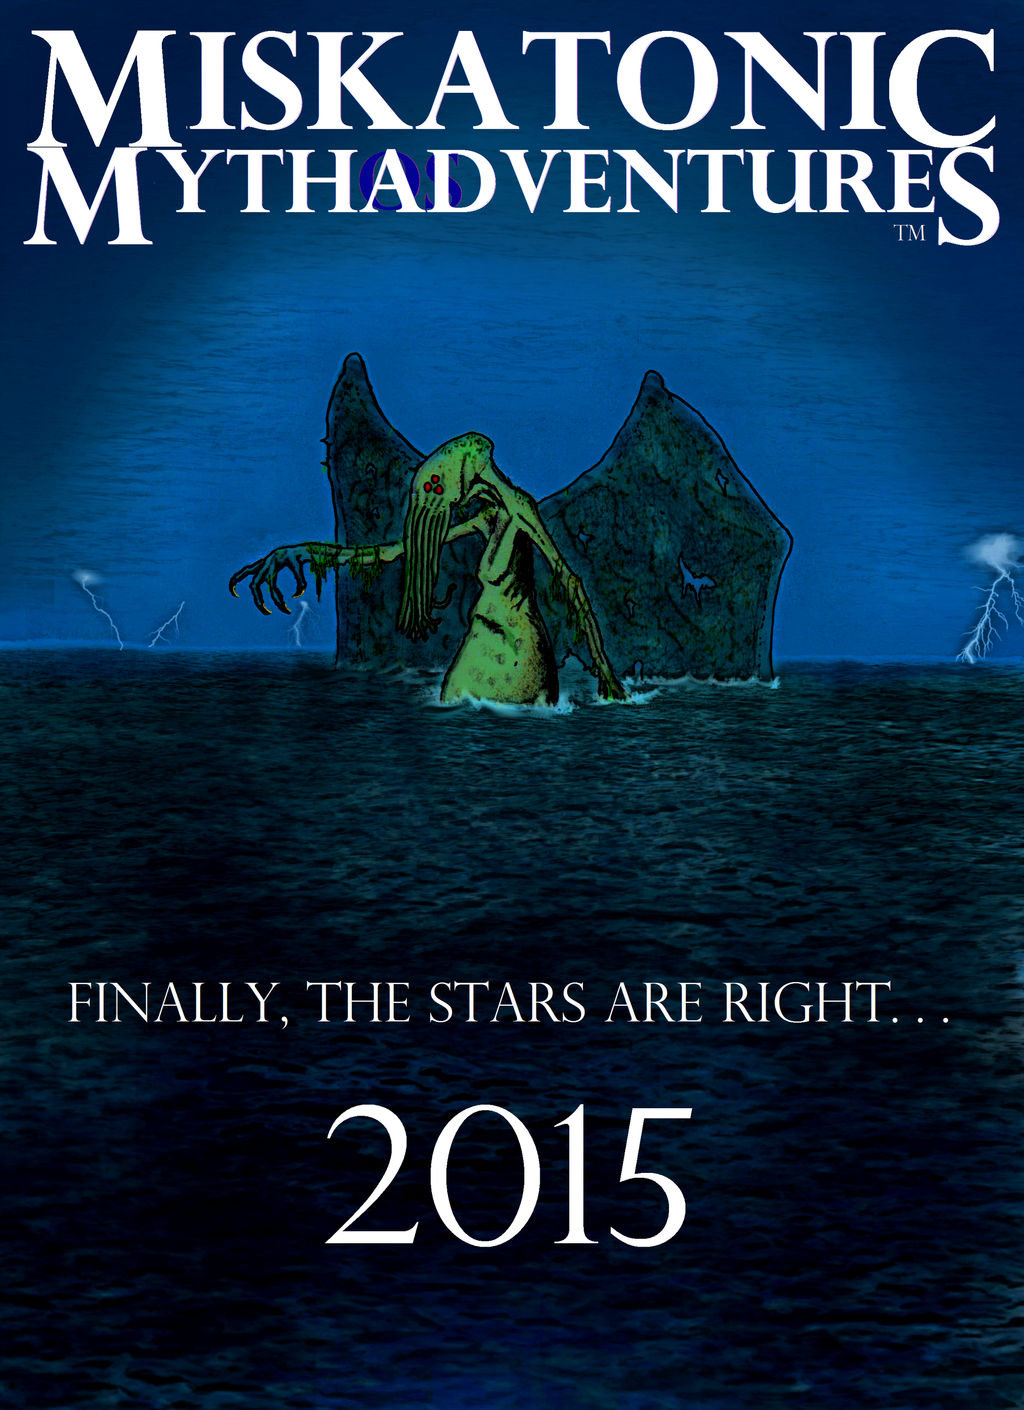 Miskatonic Mythadventures (I'm trademarked!) by vonmeer